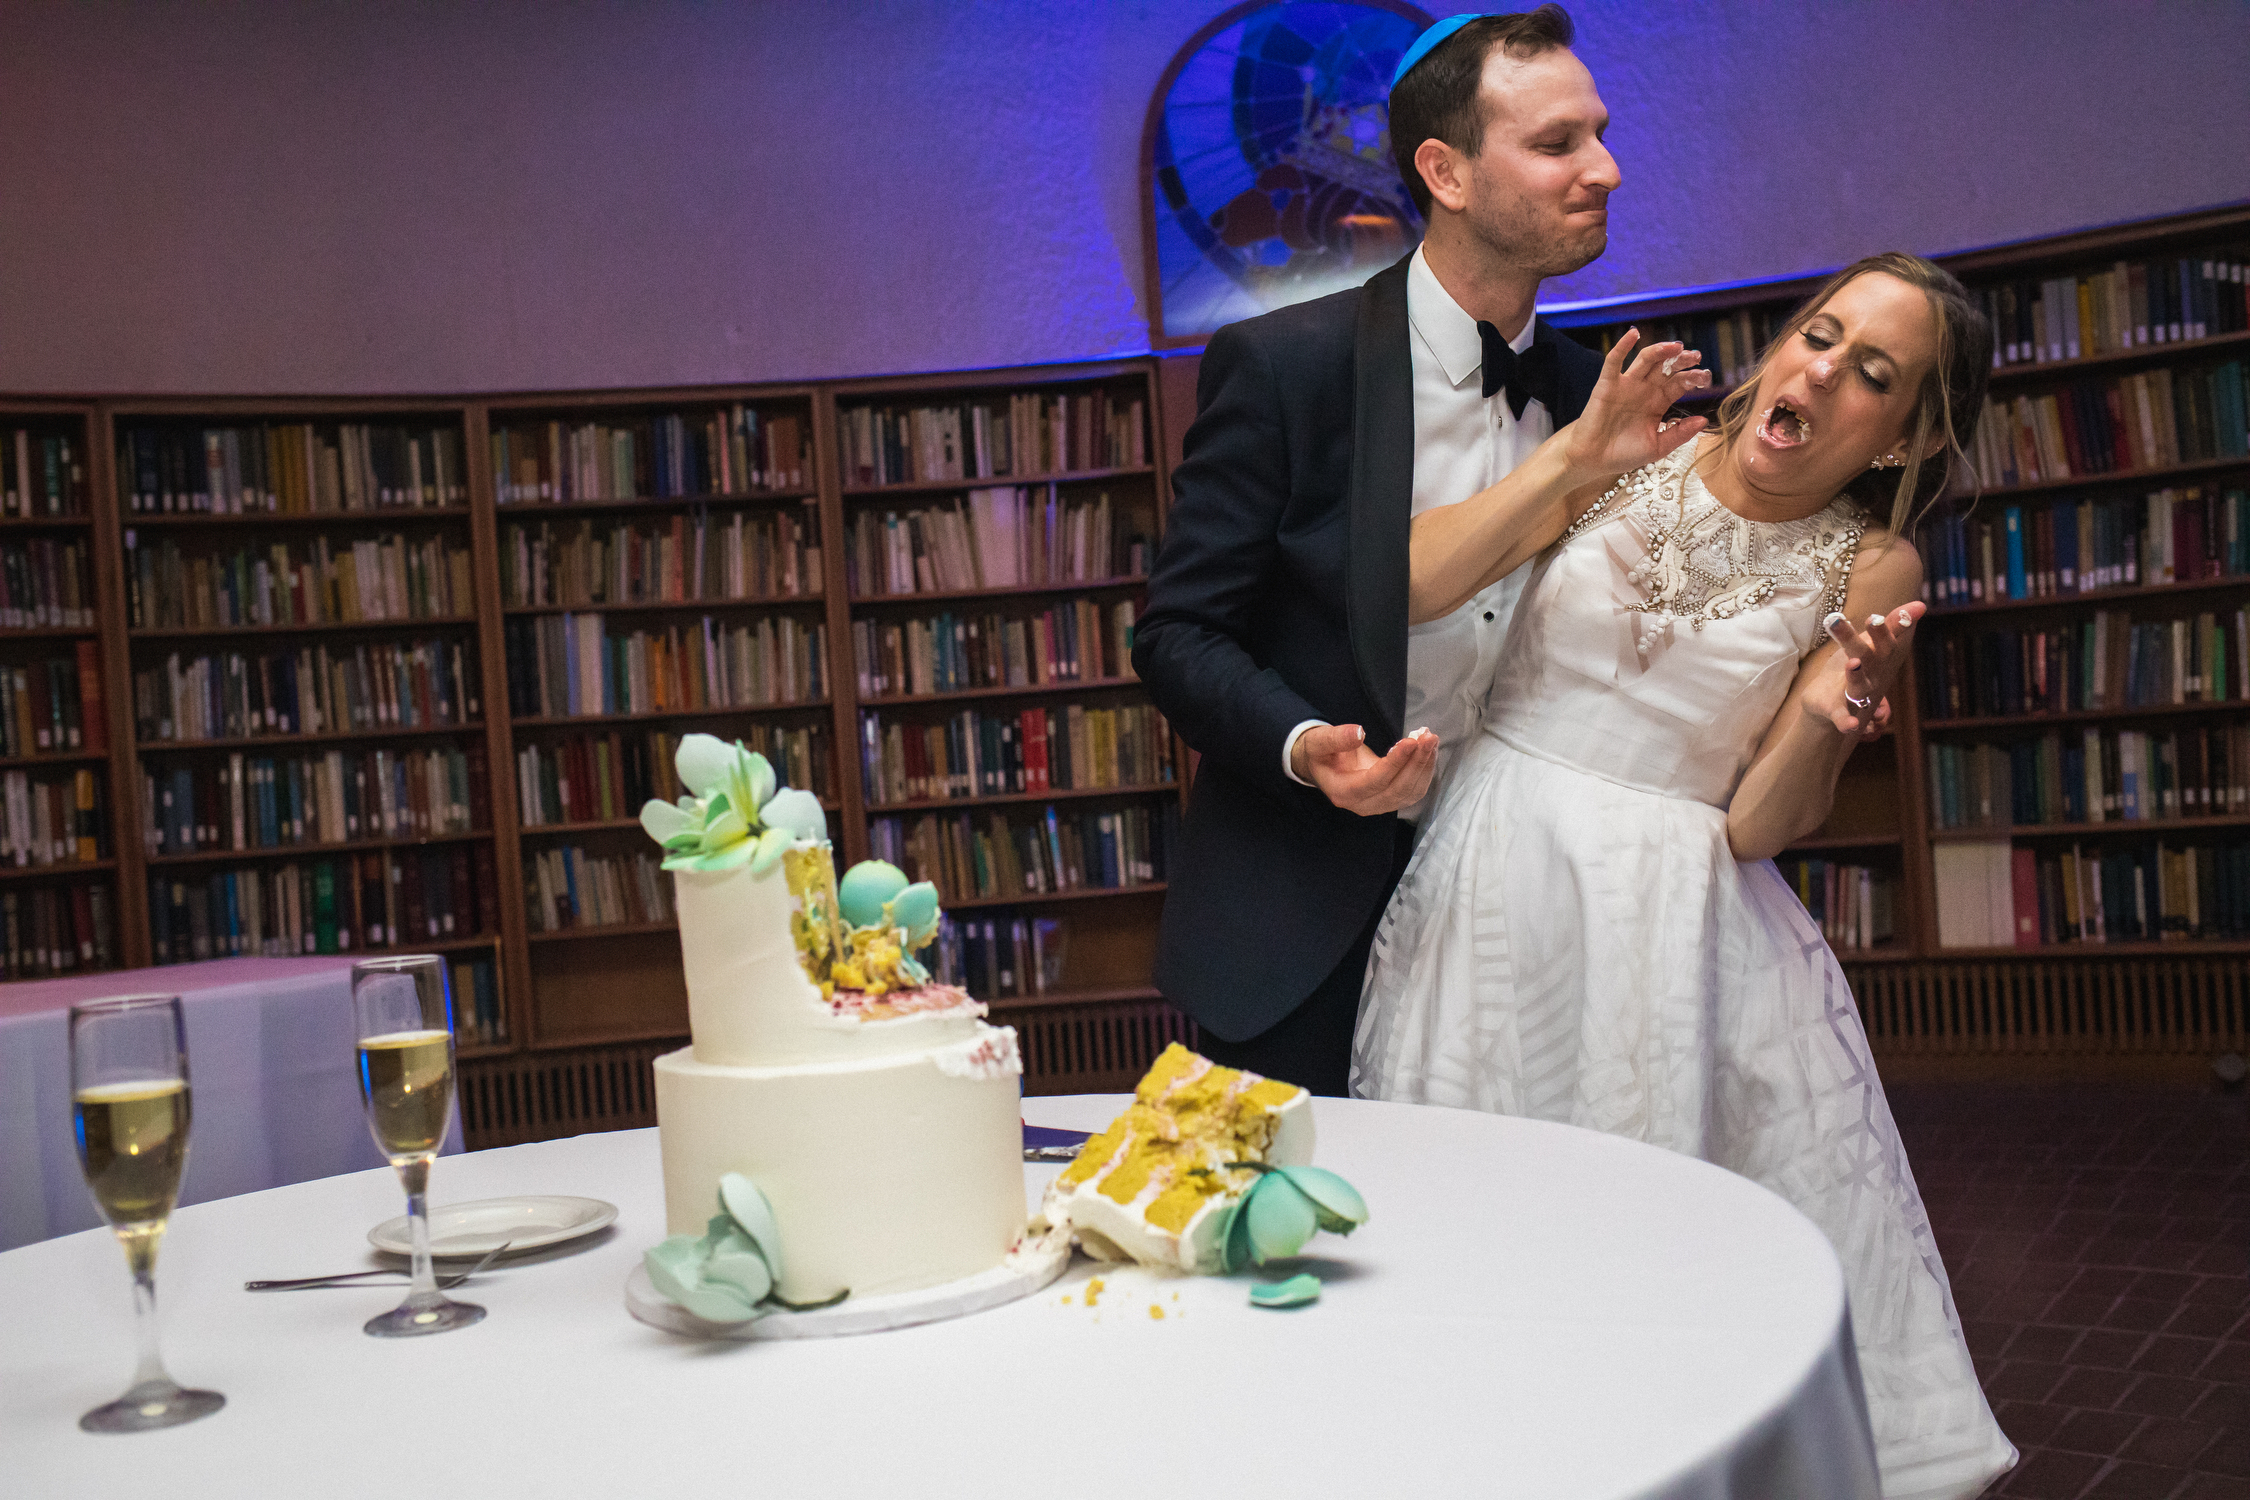 wacky-couple-moment-with-cake-in-library-annie-bang